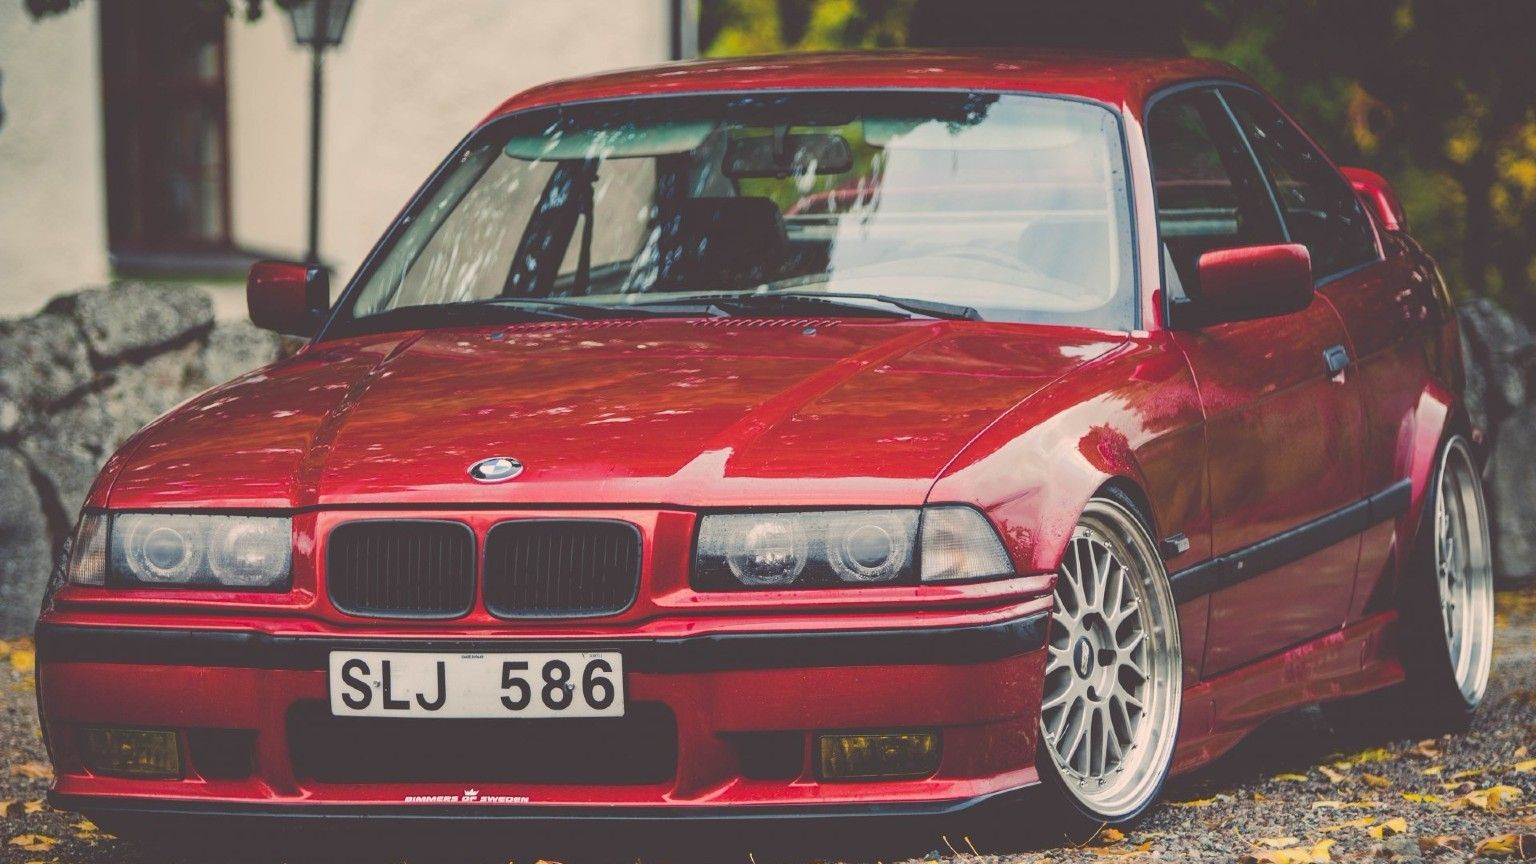 bmw e36 m3 bmw tuning stance red hd wallpaper bmw red. Black Bedroom Furniture Sets. Home Design Ideas